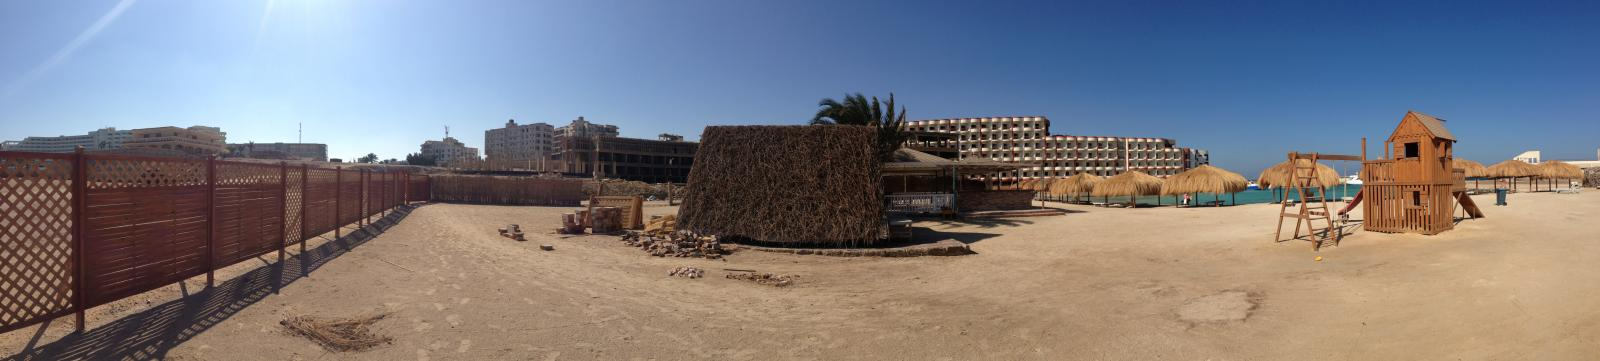 Cleopatra-Resort-15-january-2014-panorama-0001.JPG